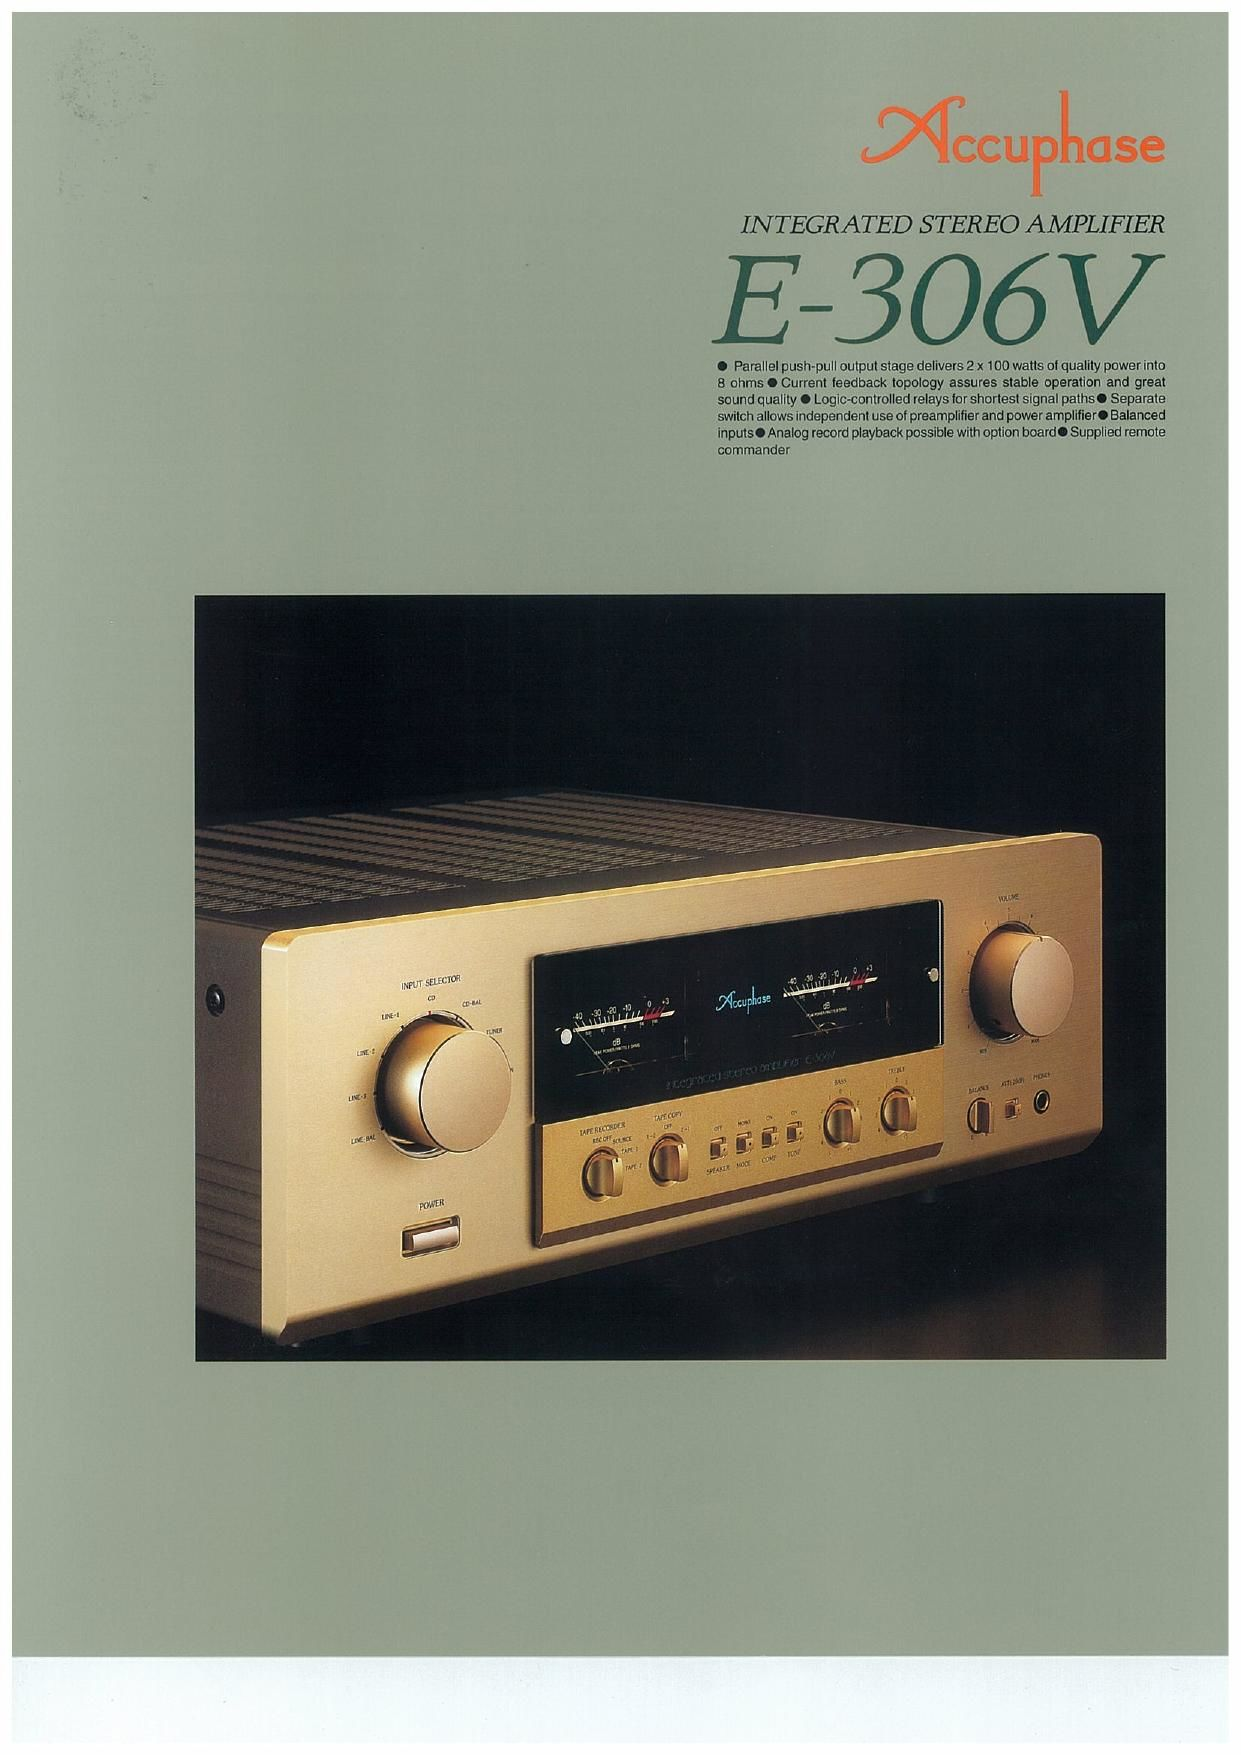 Accuphase E 306 V Brochure